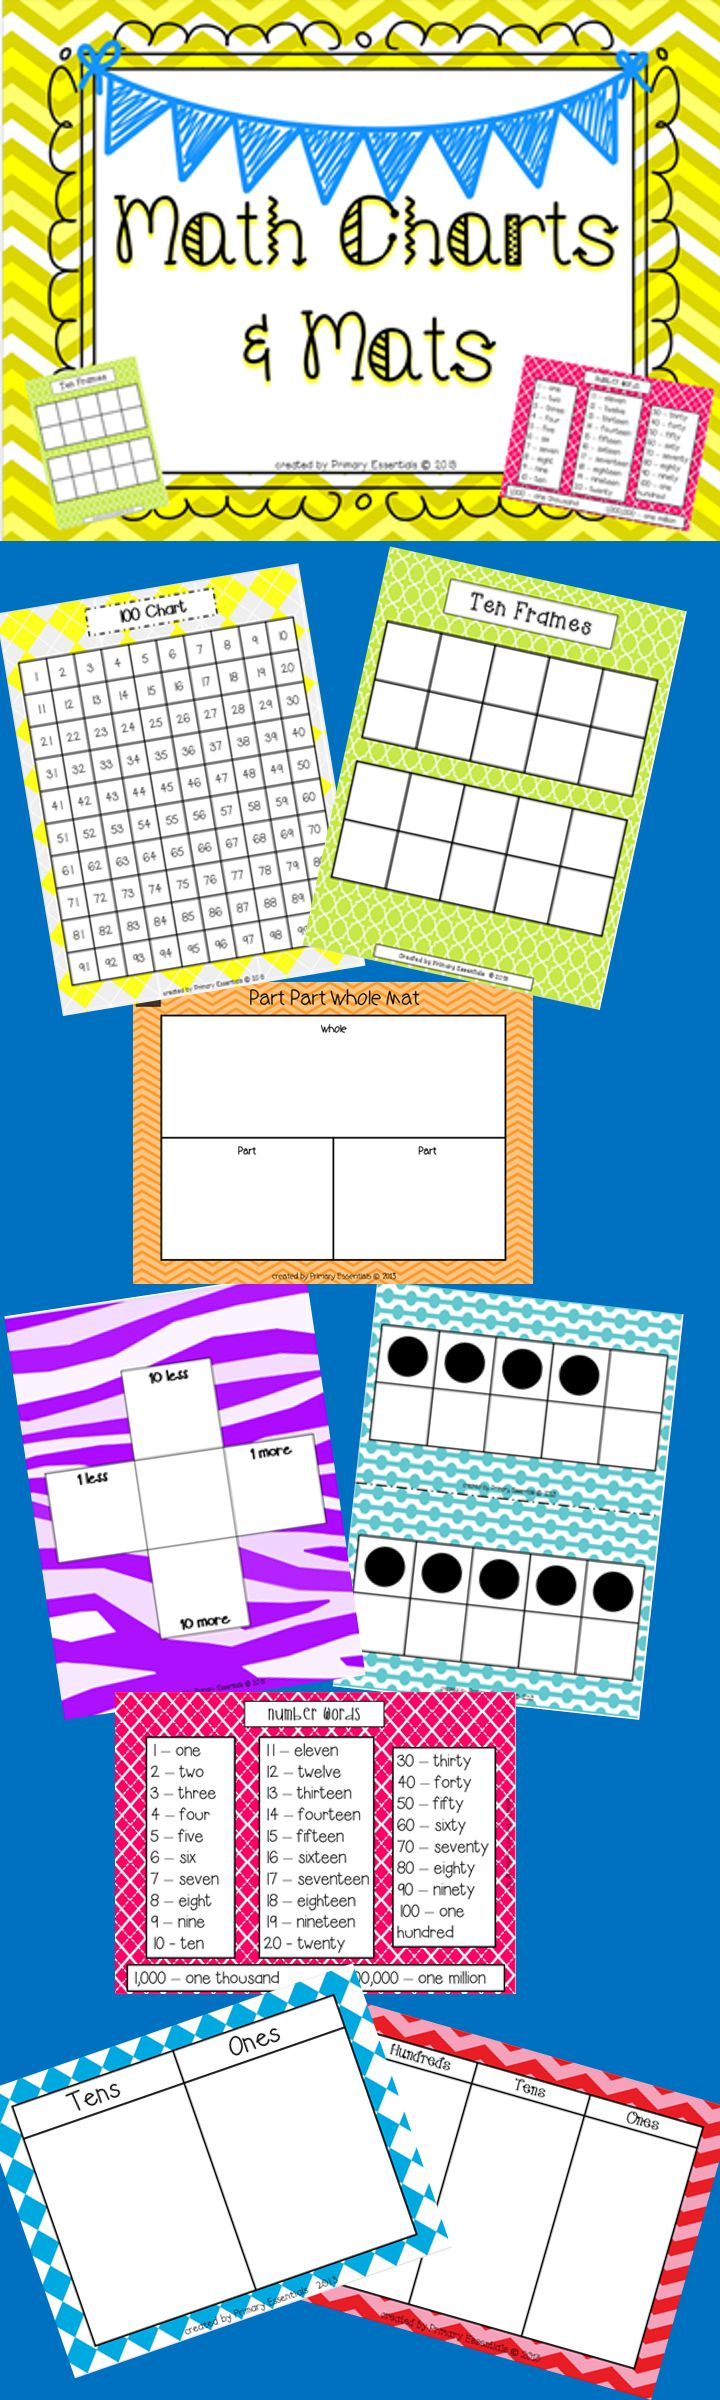 Math Charts and Mats: 100 Chart 120 Chart Tens & Ones Mat Hundreds, Tens, & Ones Mat Part Part Whole Mat Number Word Chart More & Less Mat Ten Frames Mat Large Ten Frames Flashcards